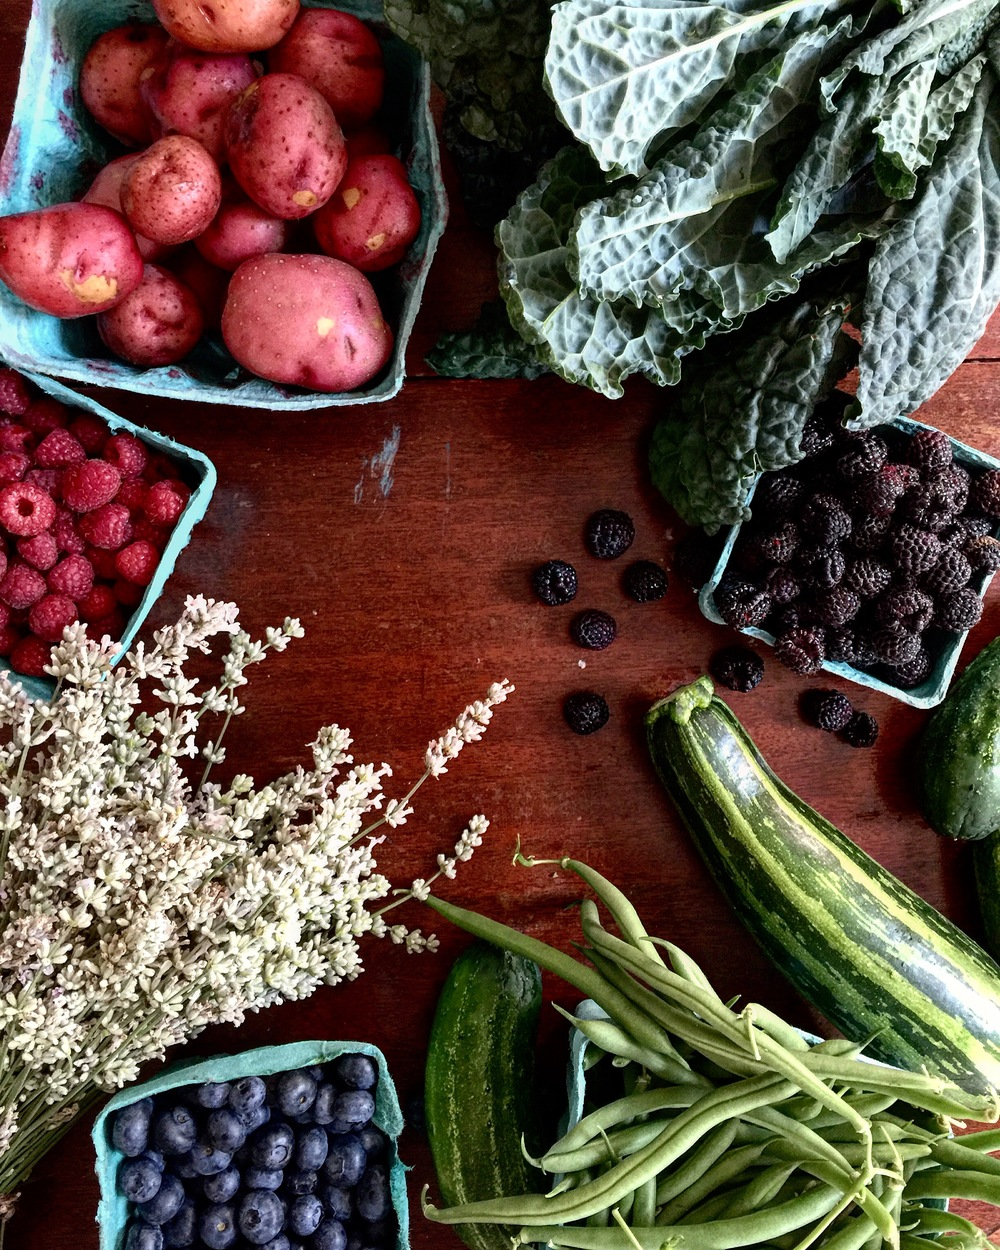 The farmers market is exploding right now, here is just some of the bounty